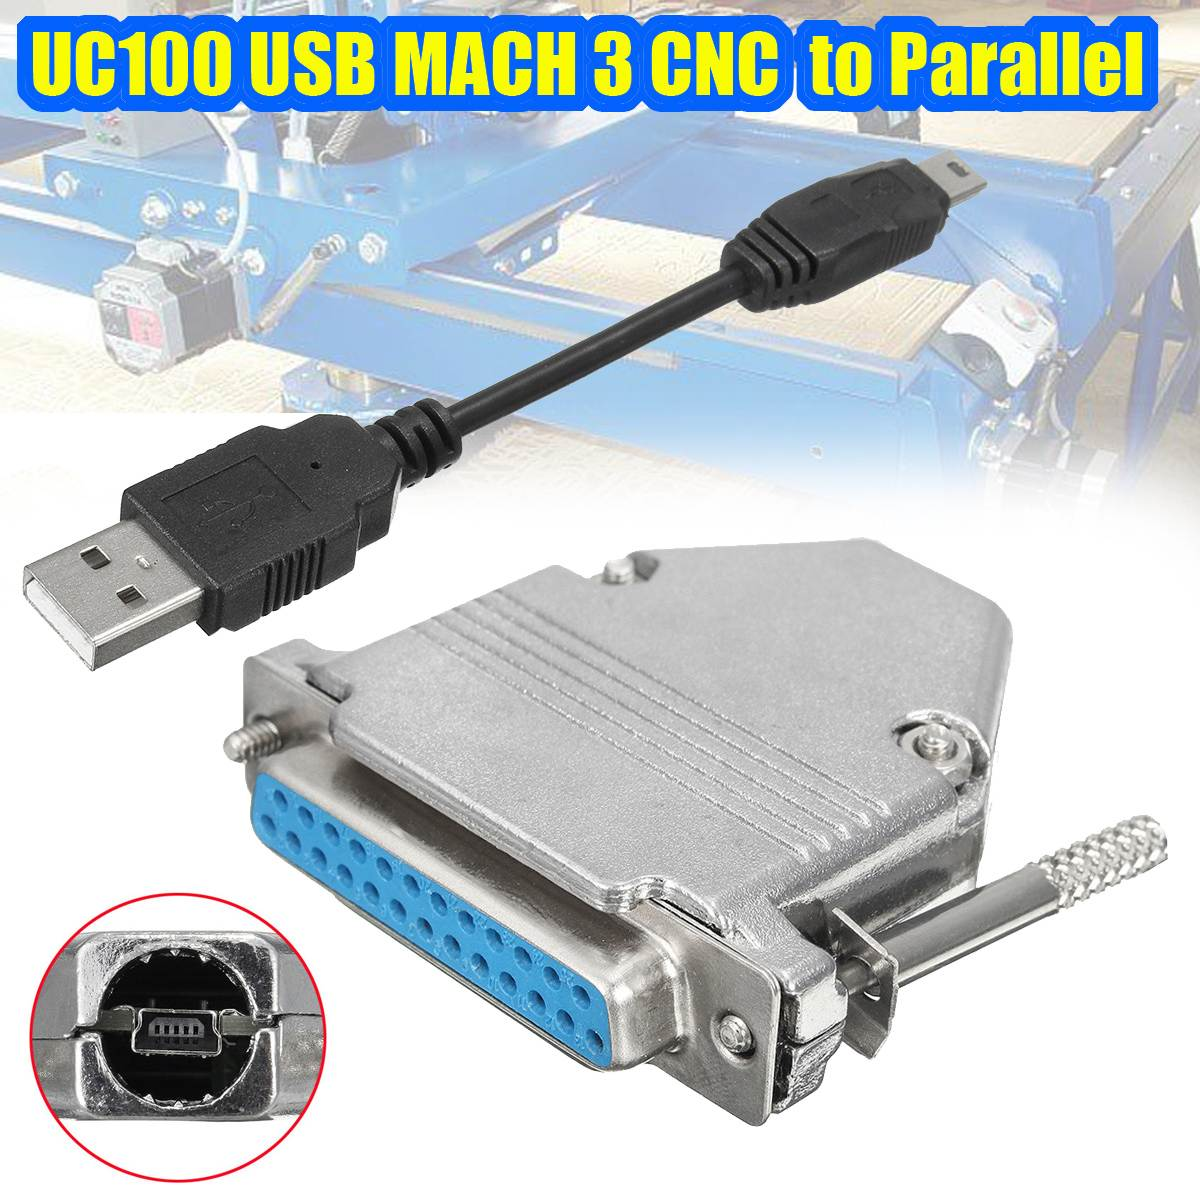 CNC Engraving Machine Parts USB to Parallel Adapter CNC Router Controller For MACH3-LY-USB100 With USB Line cnc 1610 with er11 diy cnc engraving machine mini pcb milling machine wood carving machine cnc router cnc1610 best toys gifts